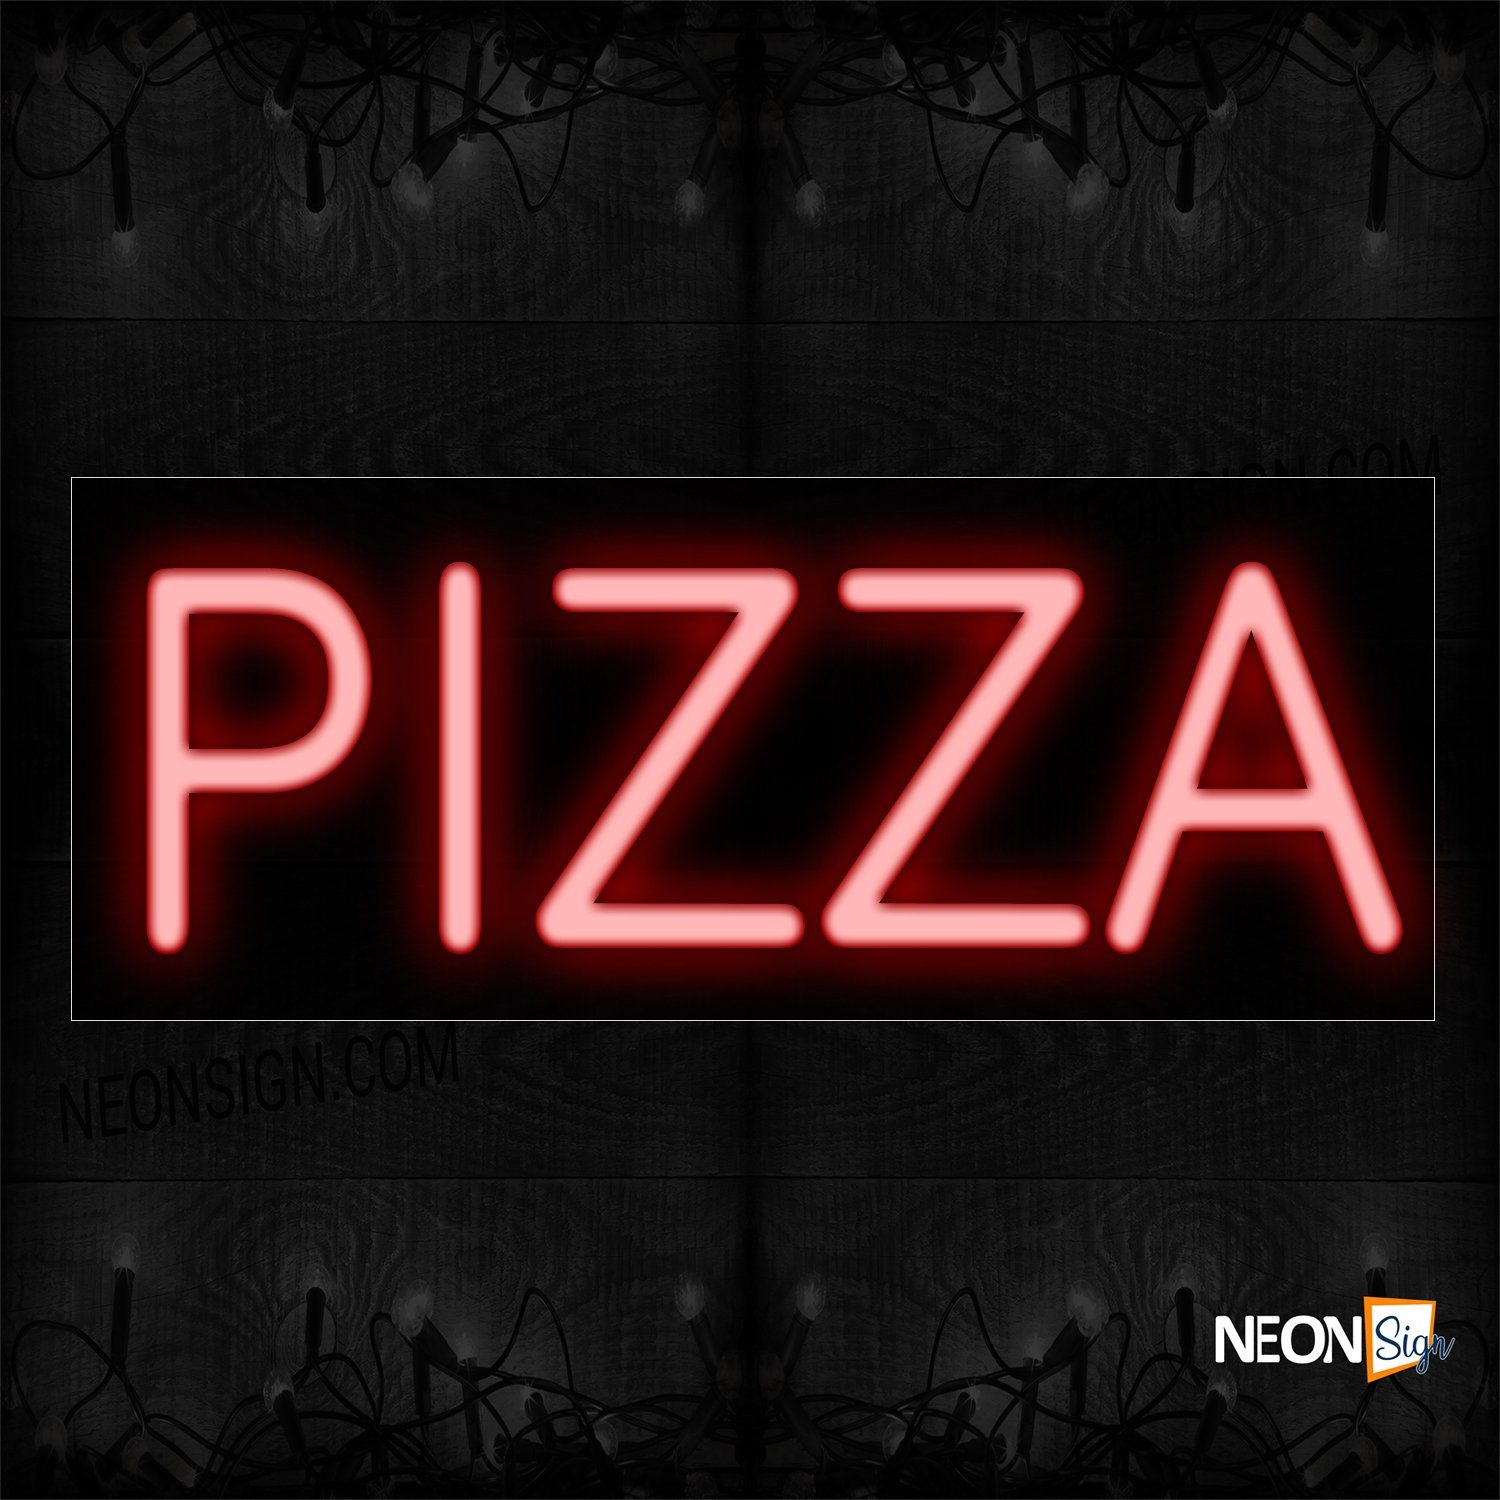 Image of 12138 Pizza Neon Sign_10x24 Black Backing